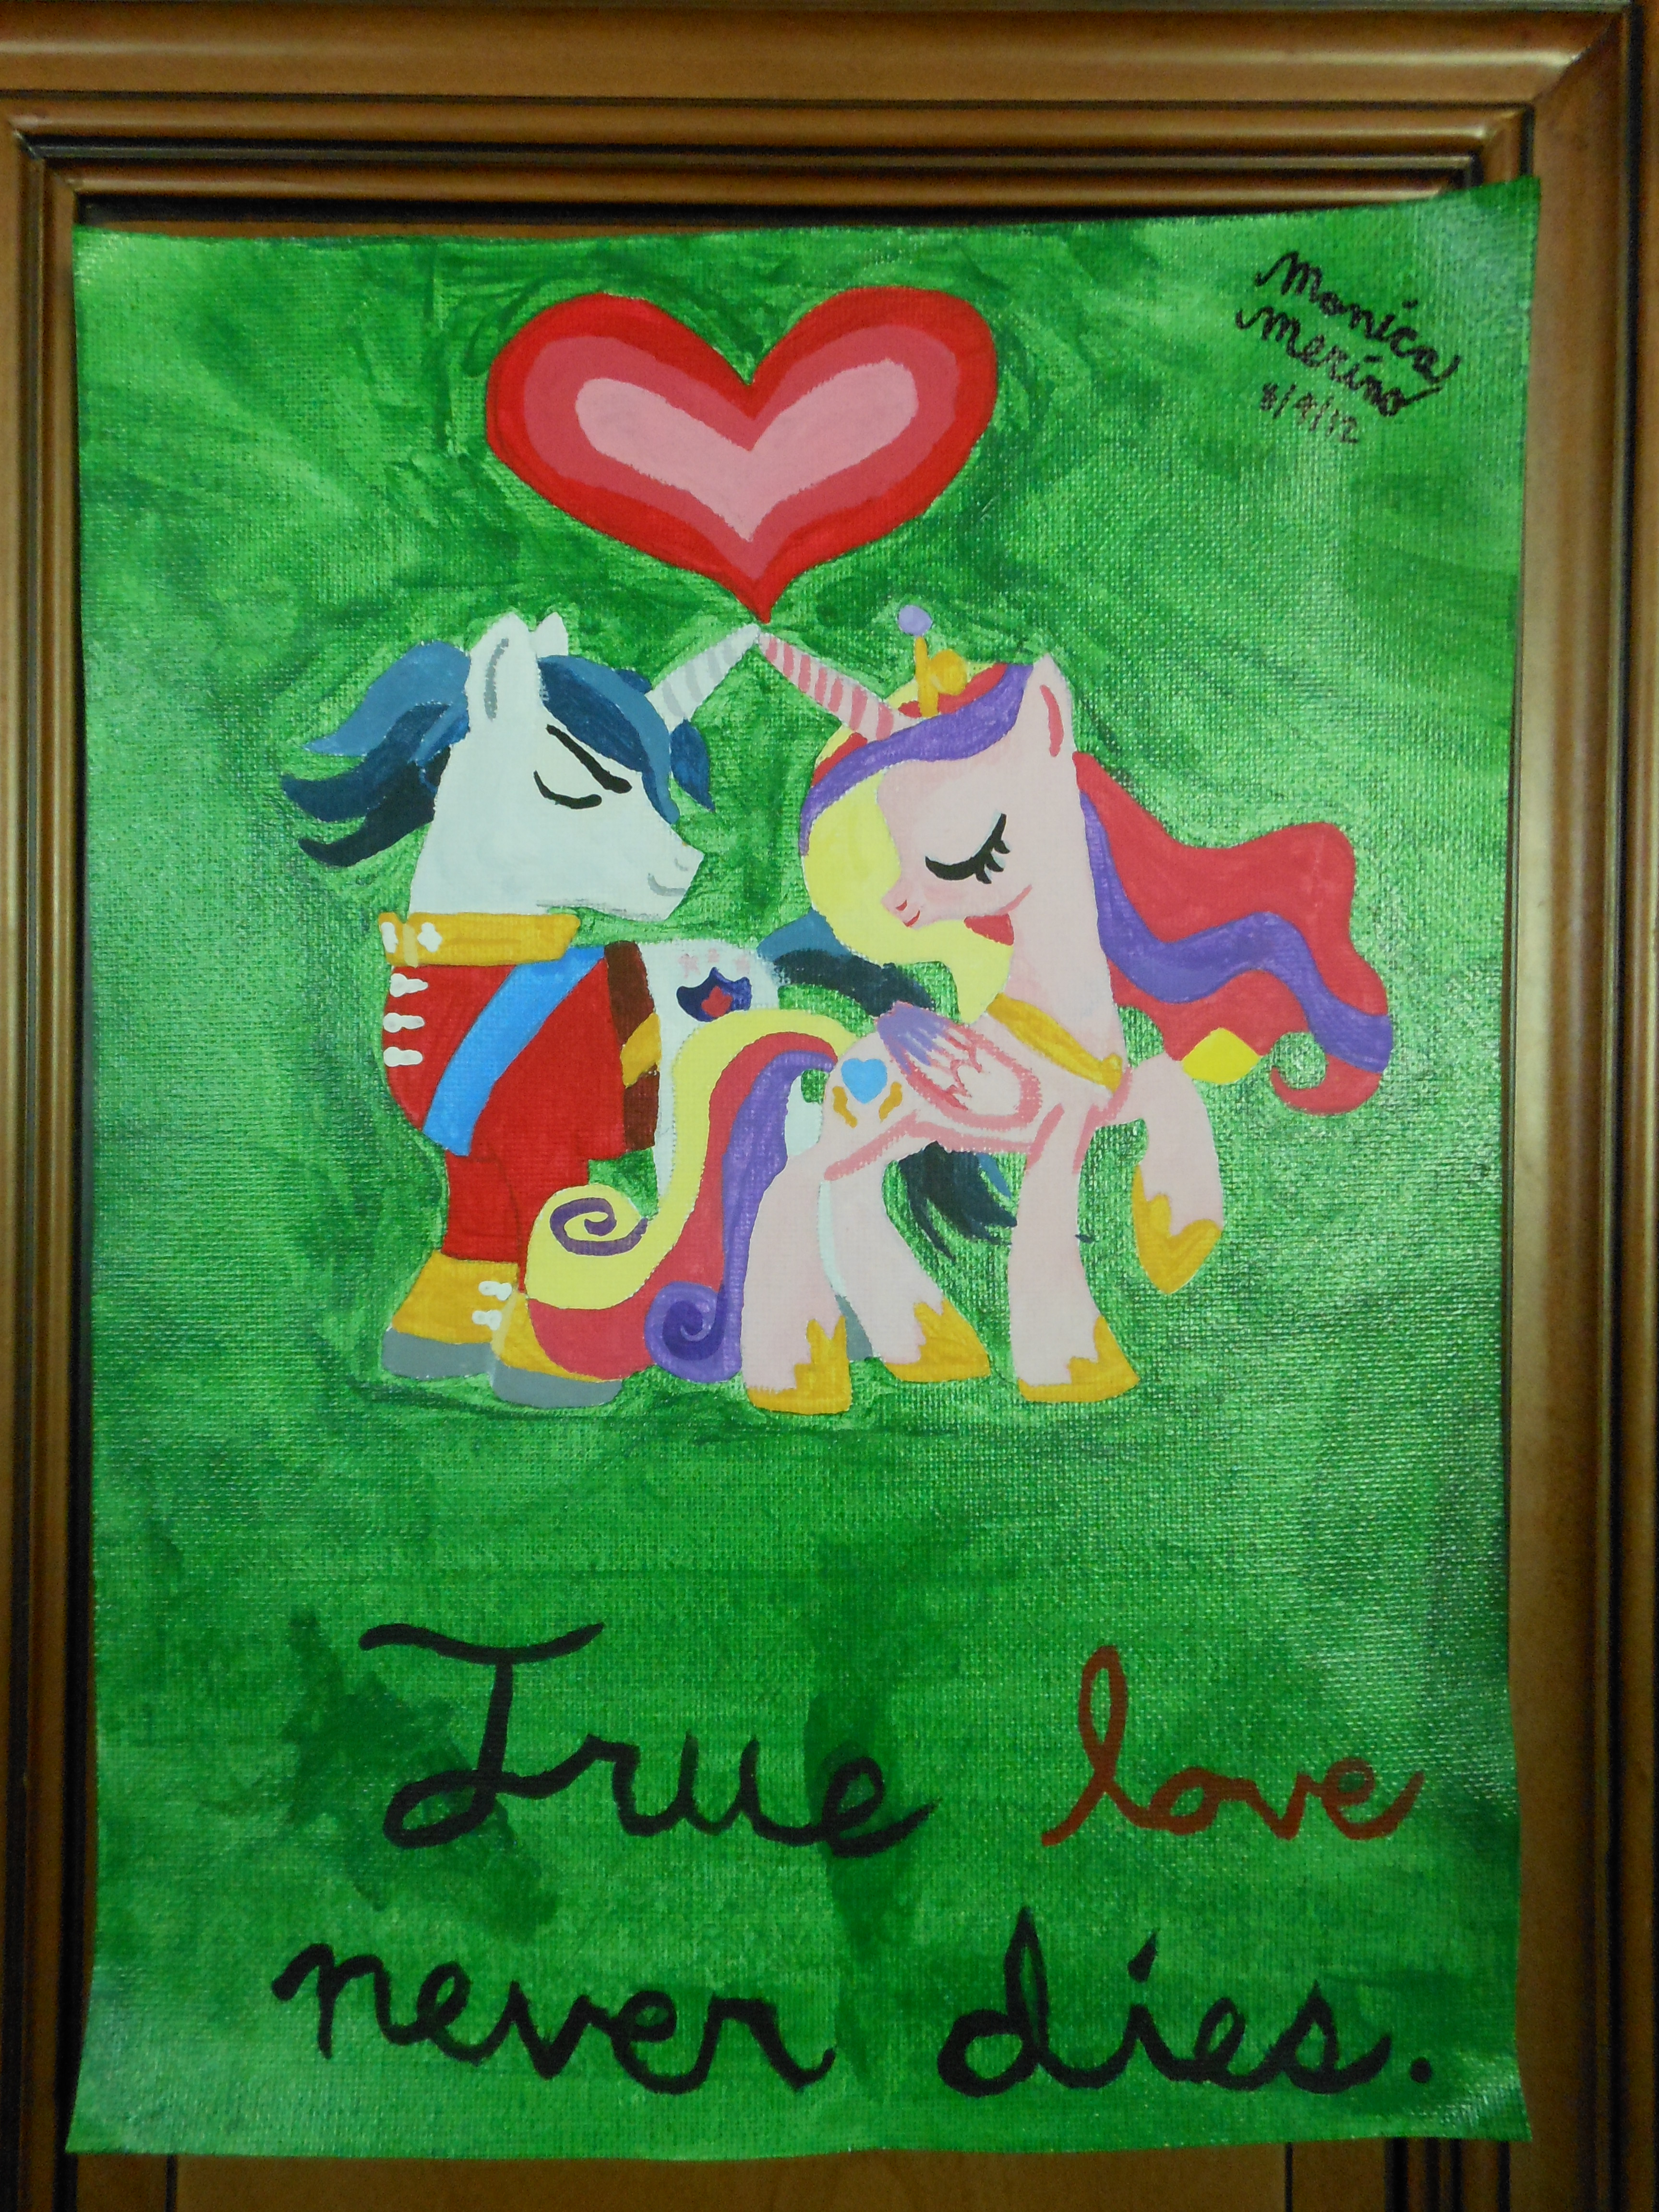 My Little Pony Friendship Is Magic Images True Love Never Dies Hd